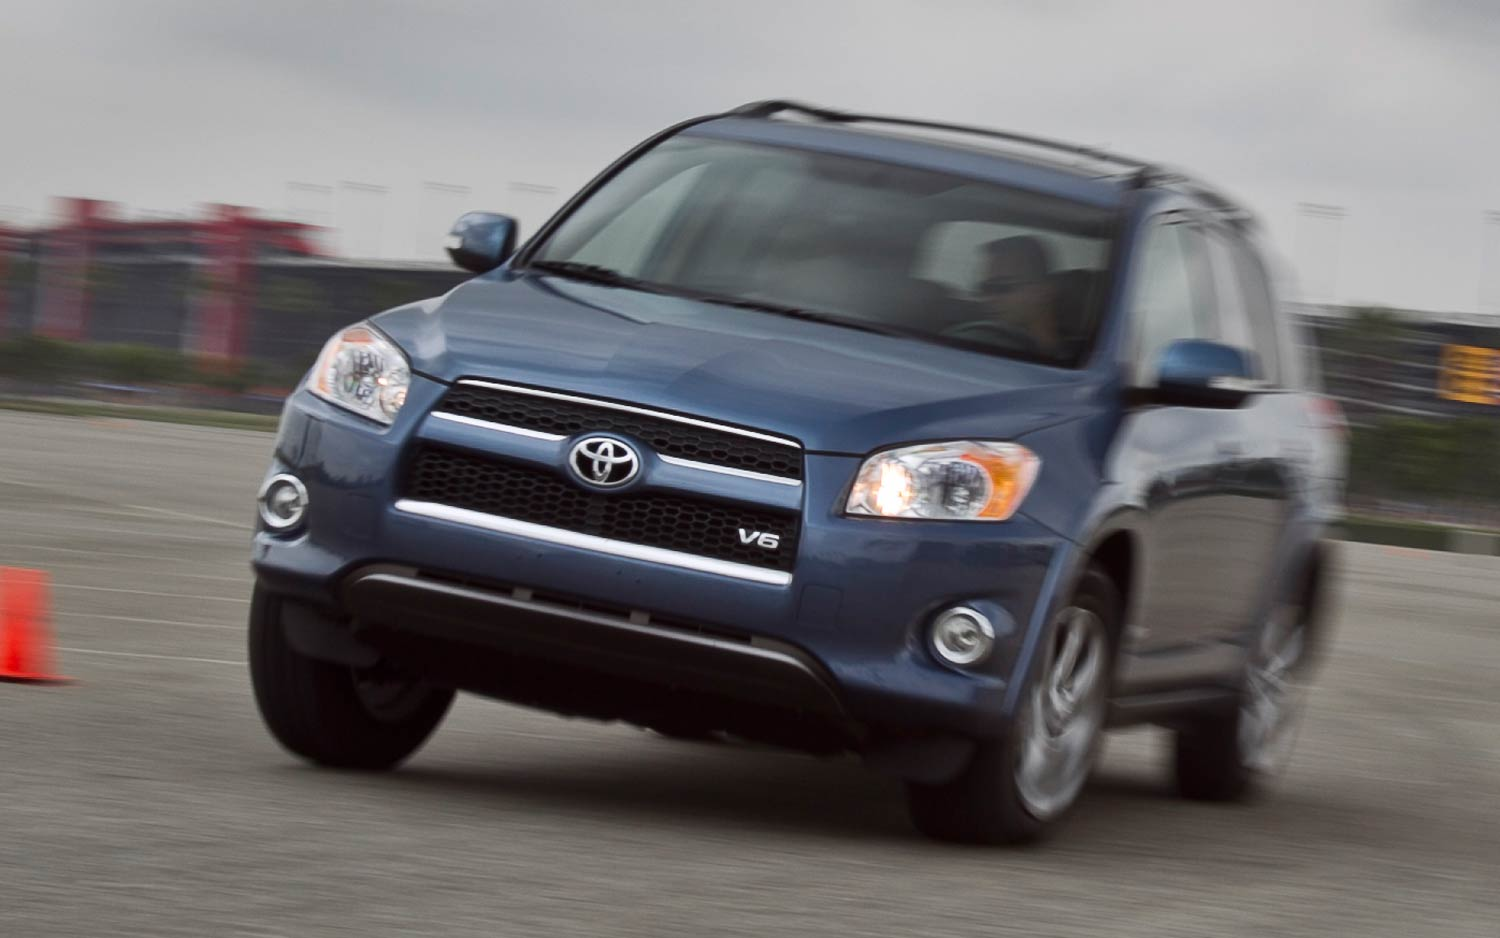 2011 Toyota Rav4 Limited V 6 Front View In Motion